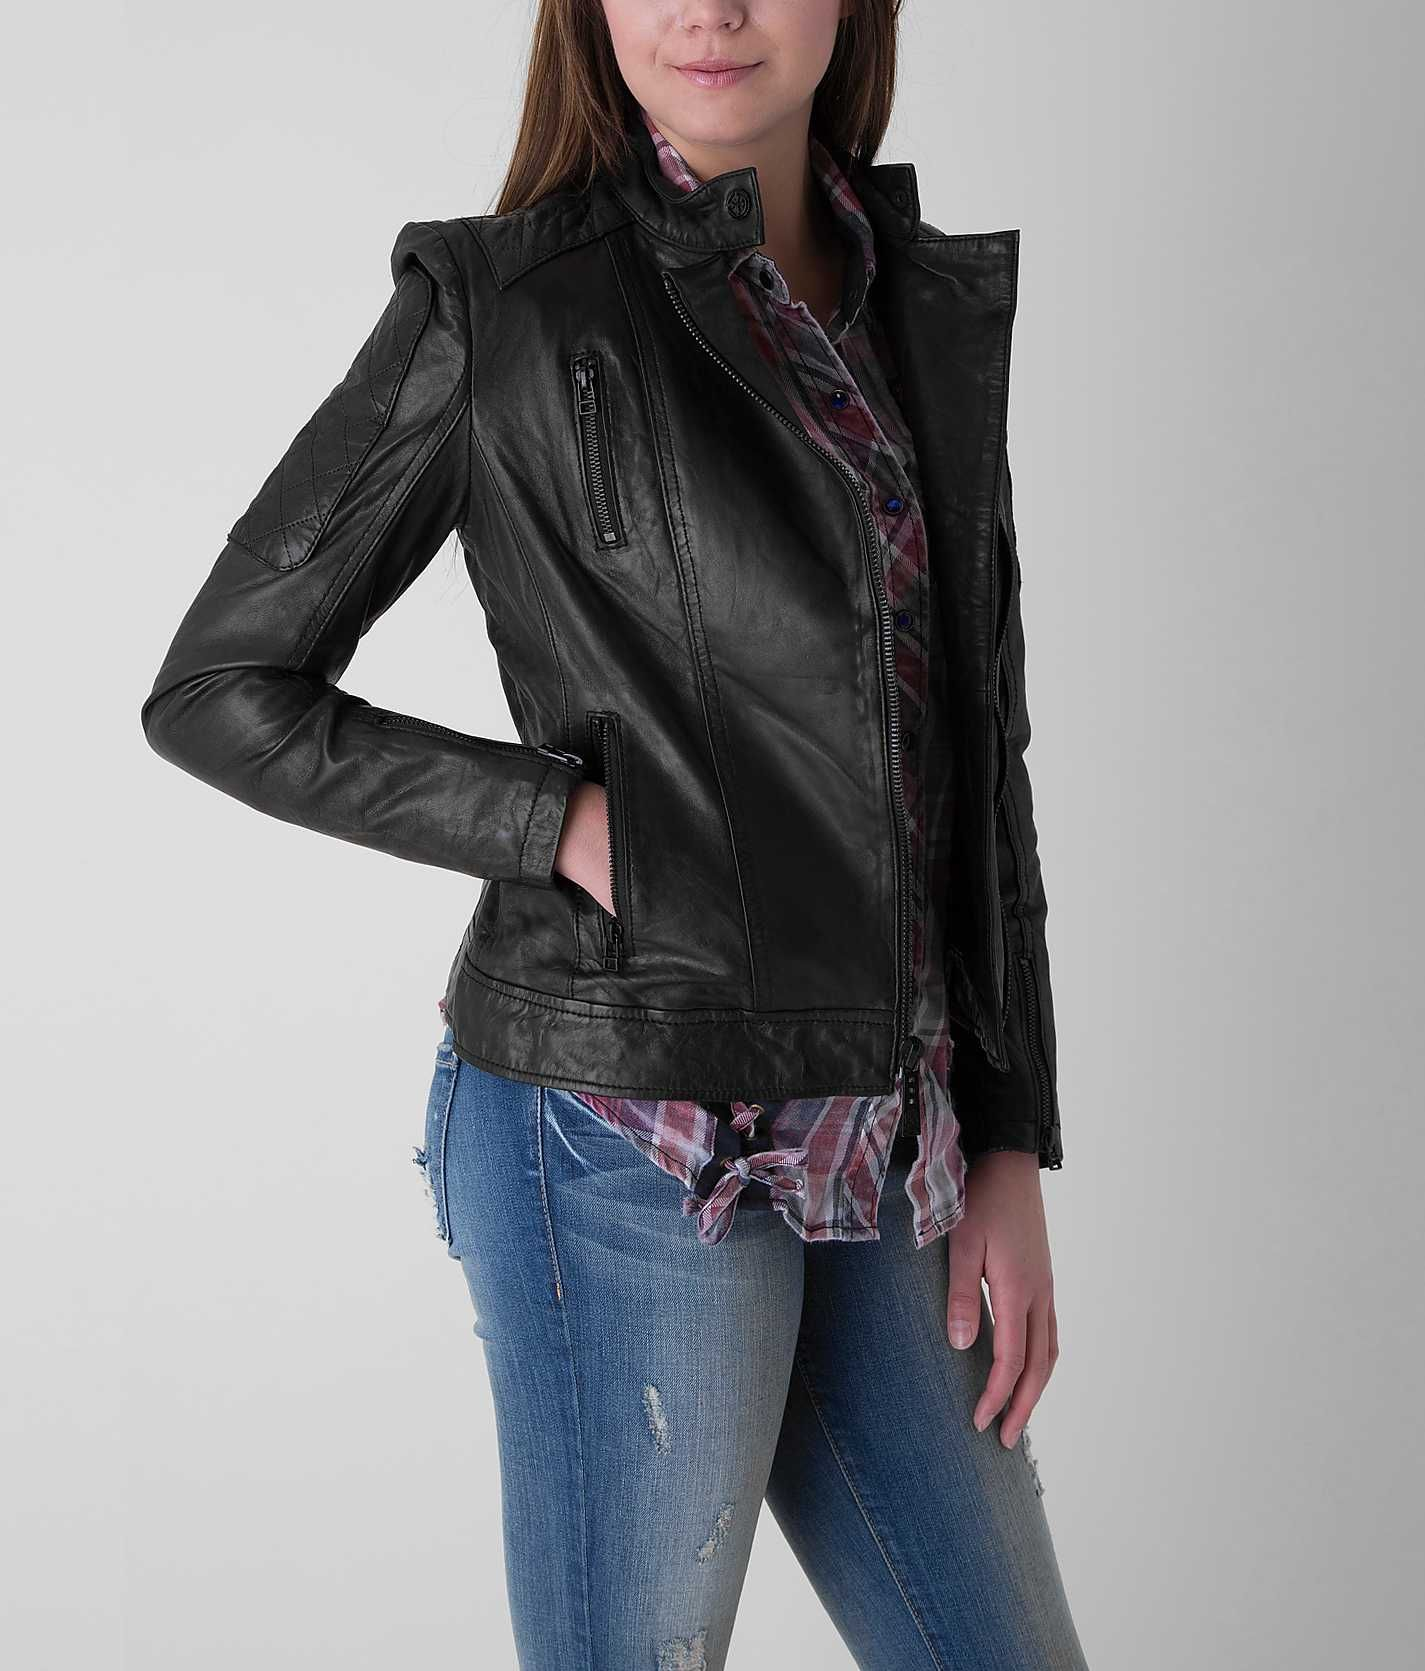 Affliction Black Premium Alexis Jacket Women's Coats